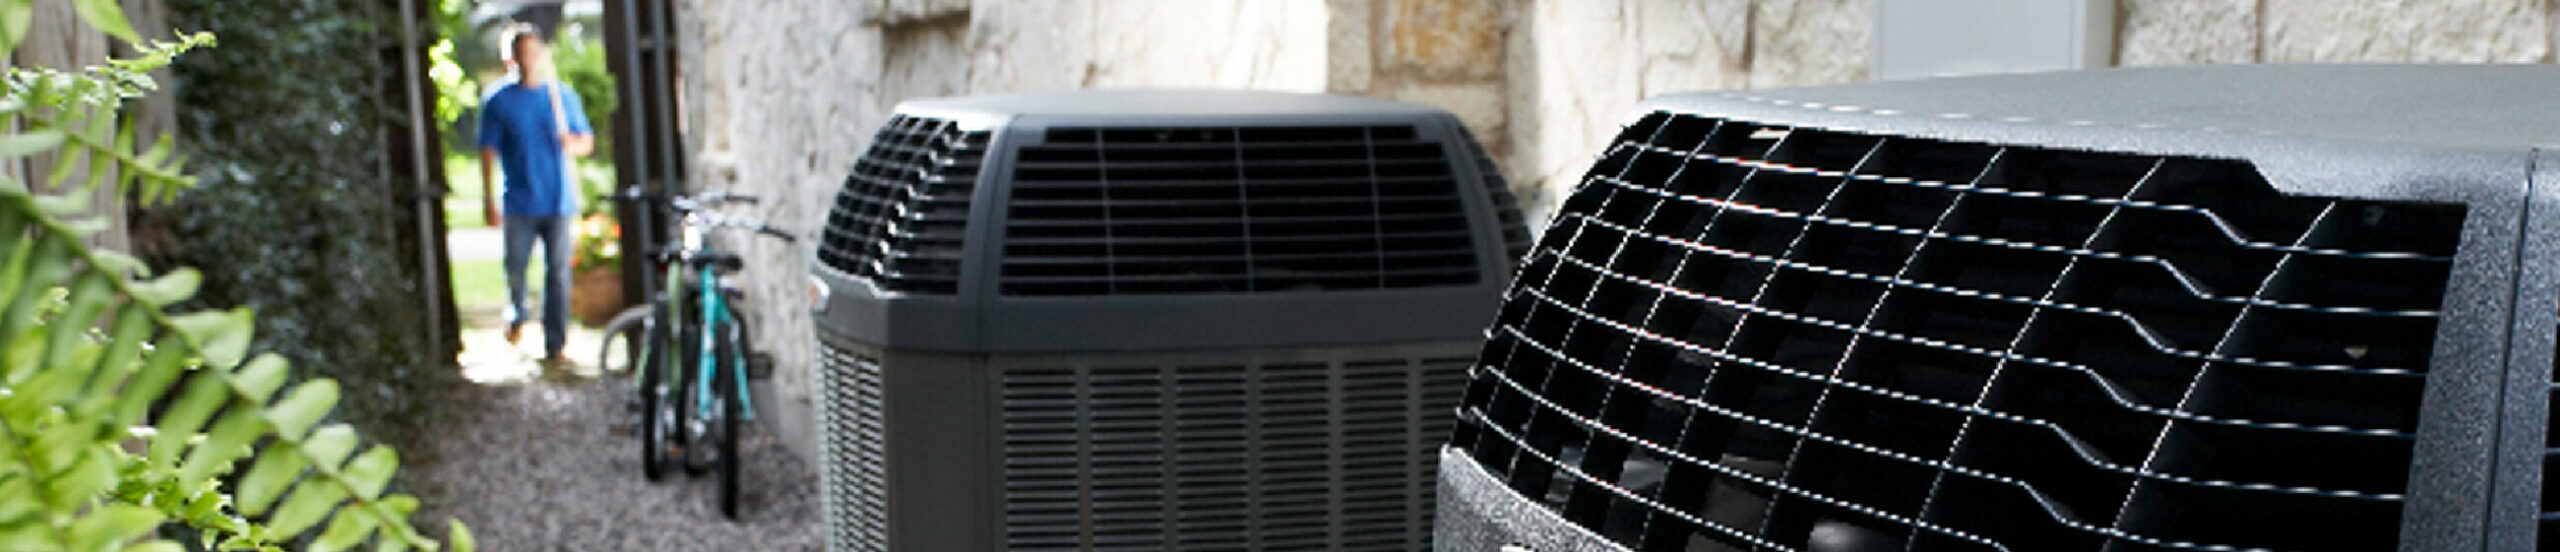 Close up of a Heat Pump unit next to a house